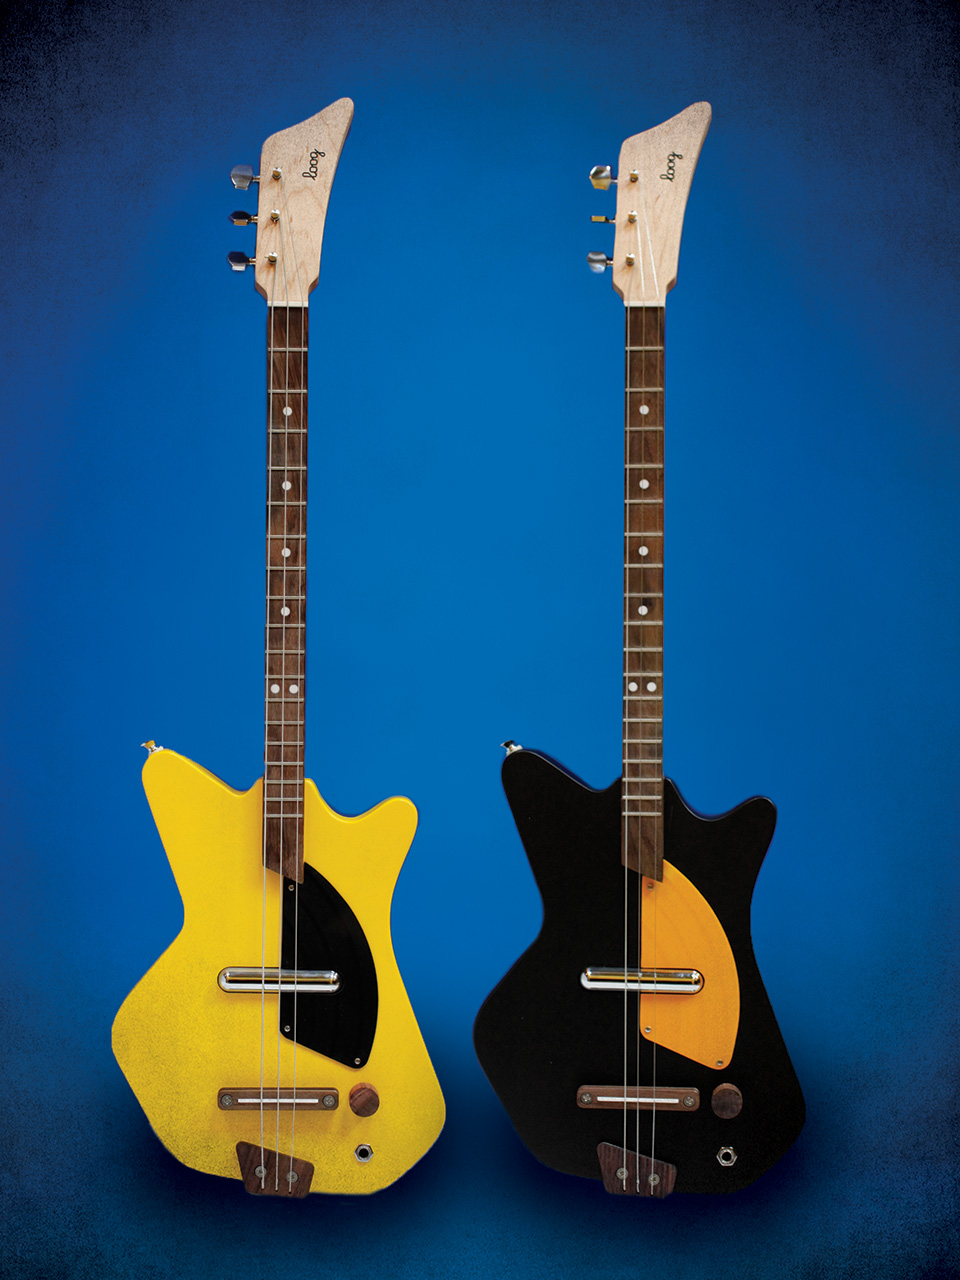 Build Your Own Electric Guitar With The Help Of Jack White